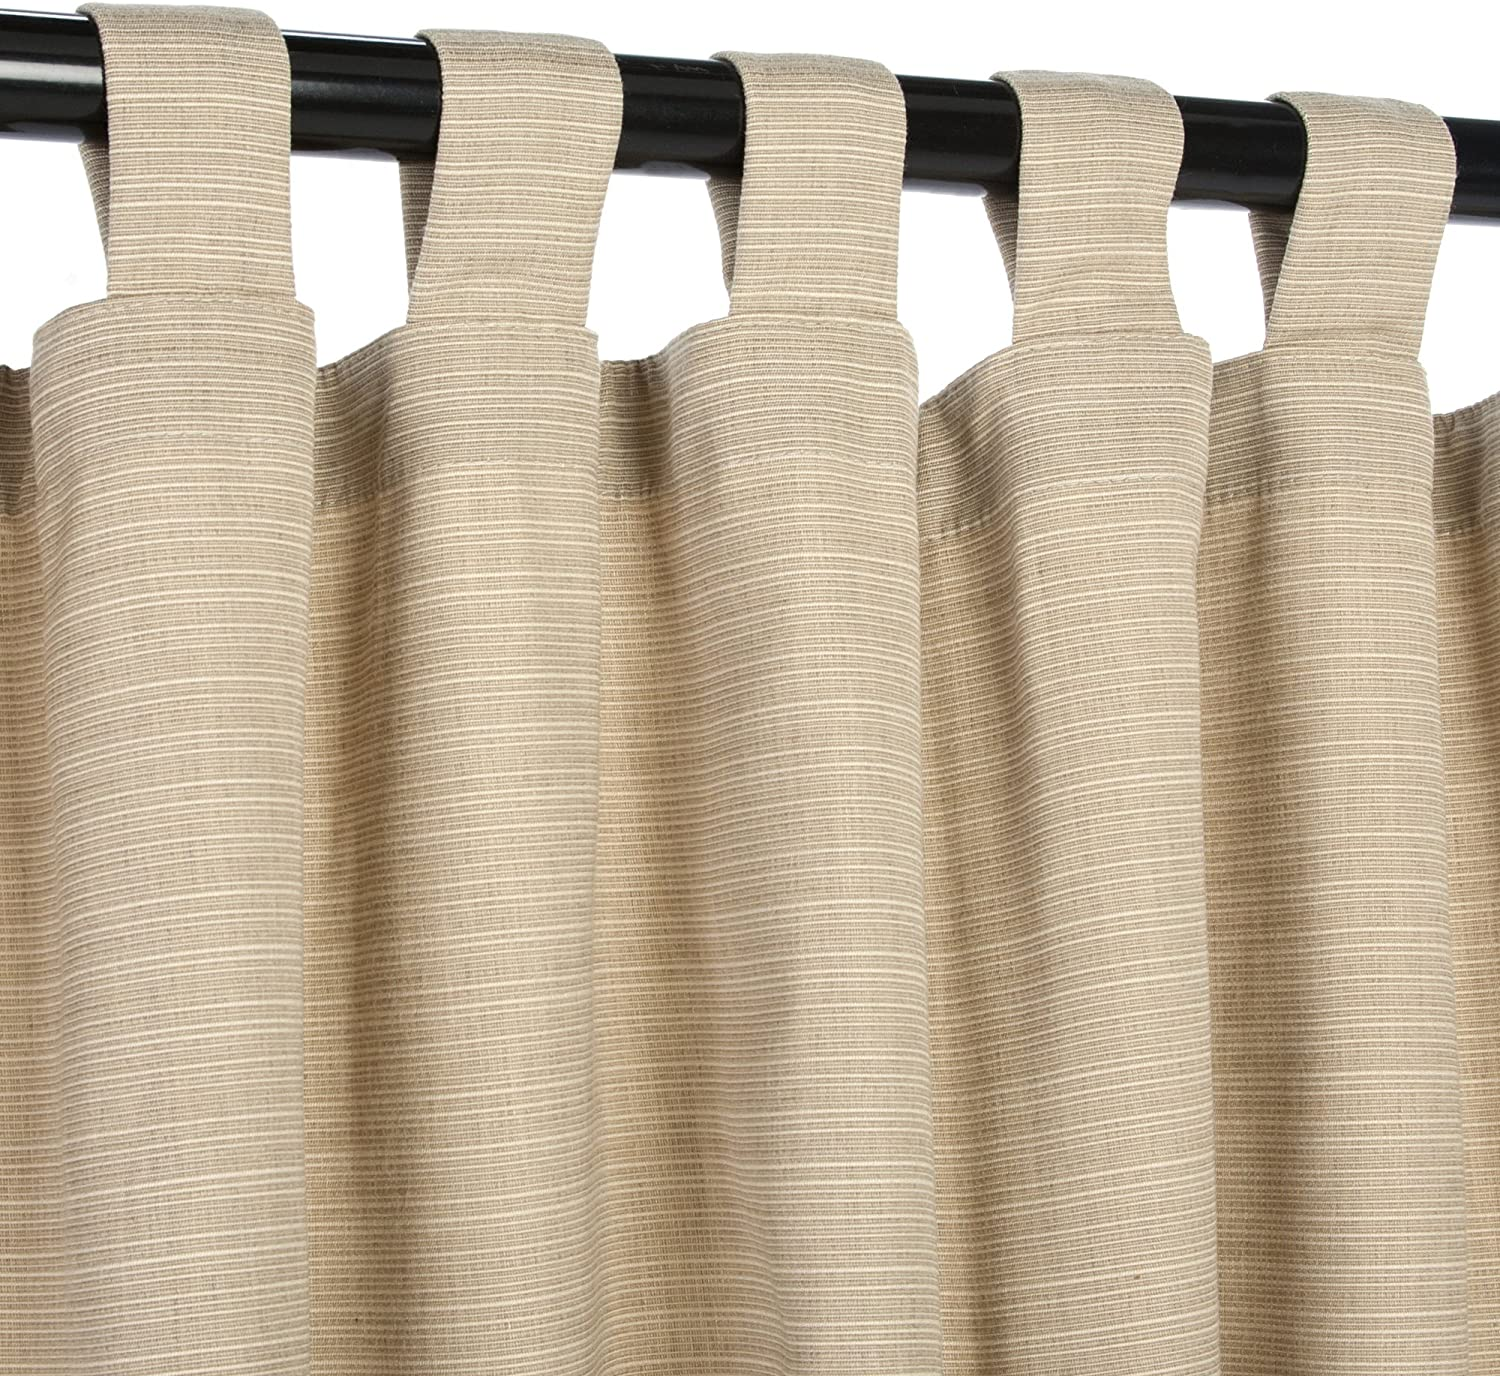 Porch Tab Top Gazebo Pergola Antique Beige and Sizes Includes Custom Storage Bag; Perfect for Your Patio 50 by 84 Inch Sunbrella Outdoor Curtain Panel and More